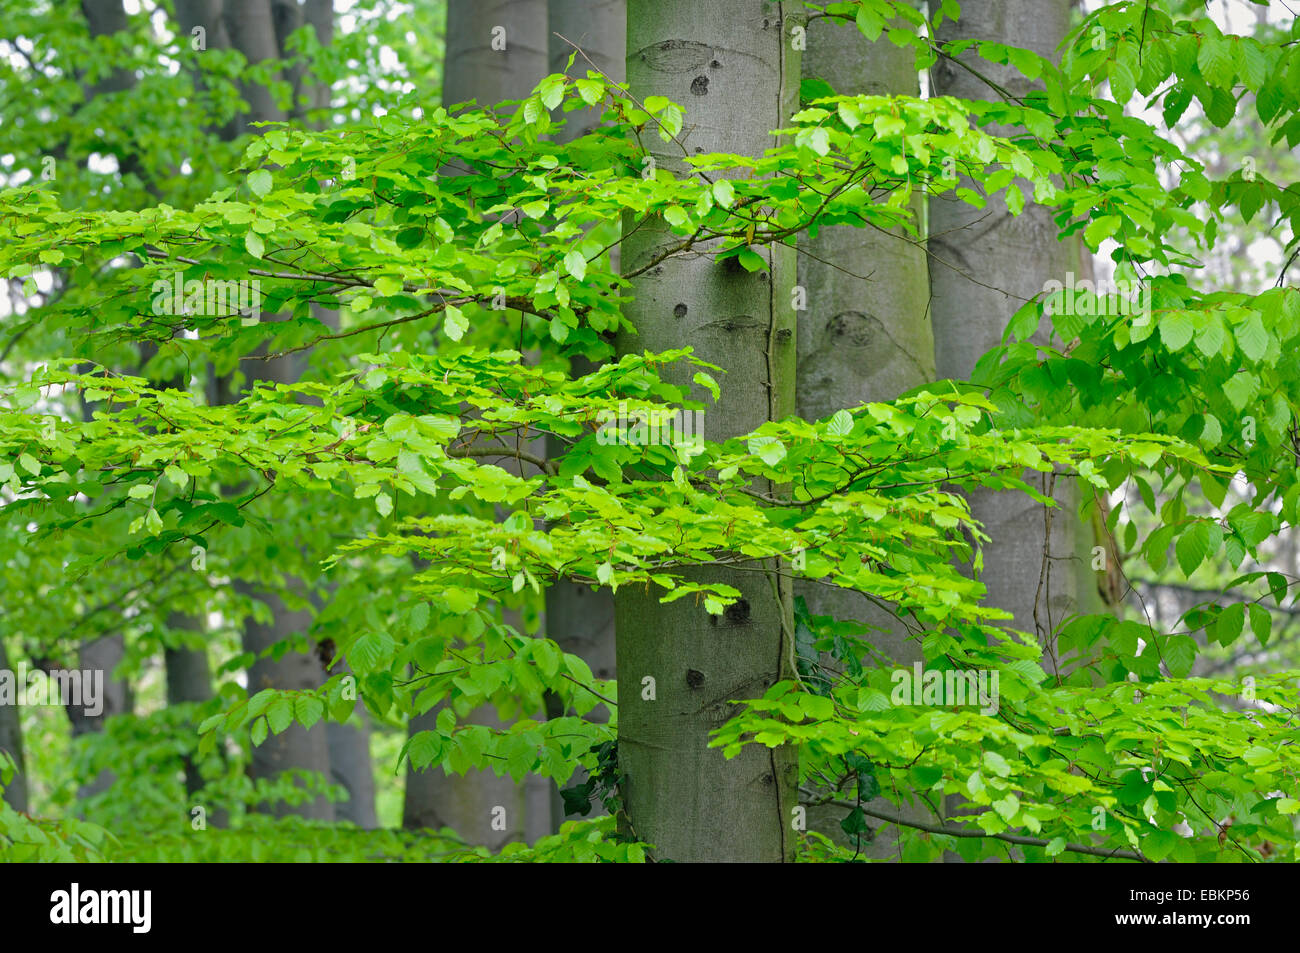 common beech (Fagus sylvatica), common beeches with young leaves, Germany Stock Photo